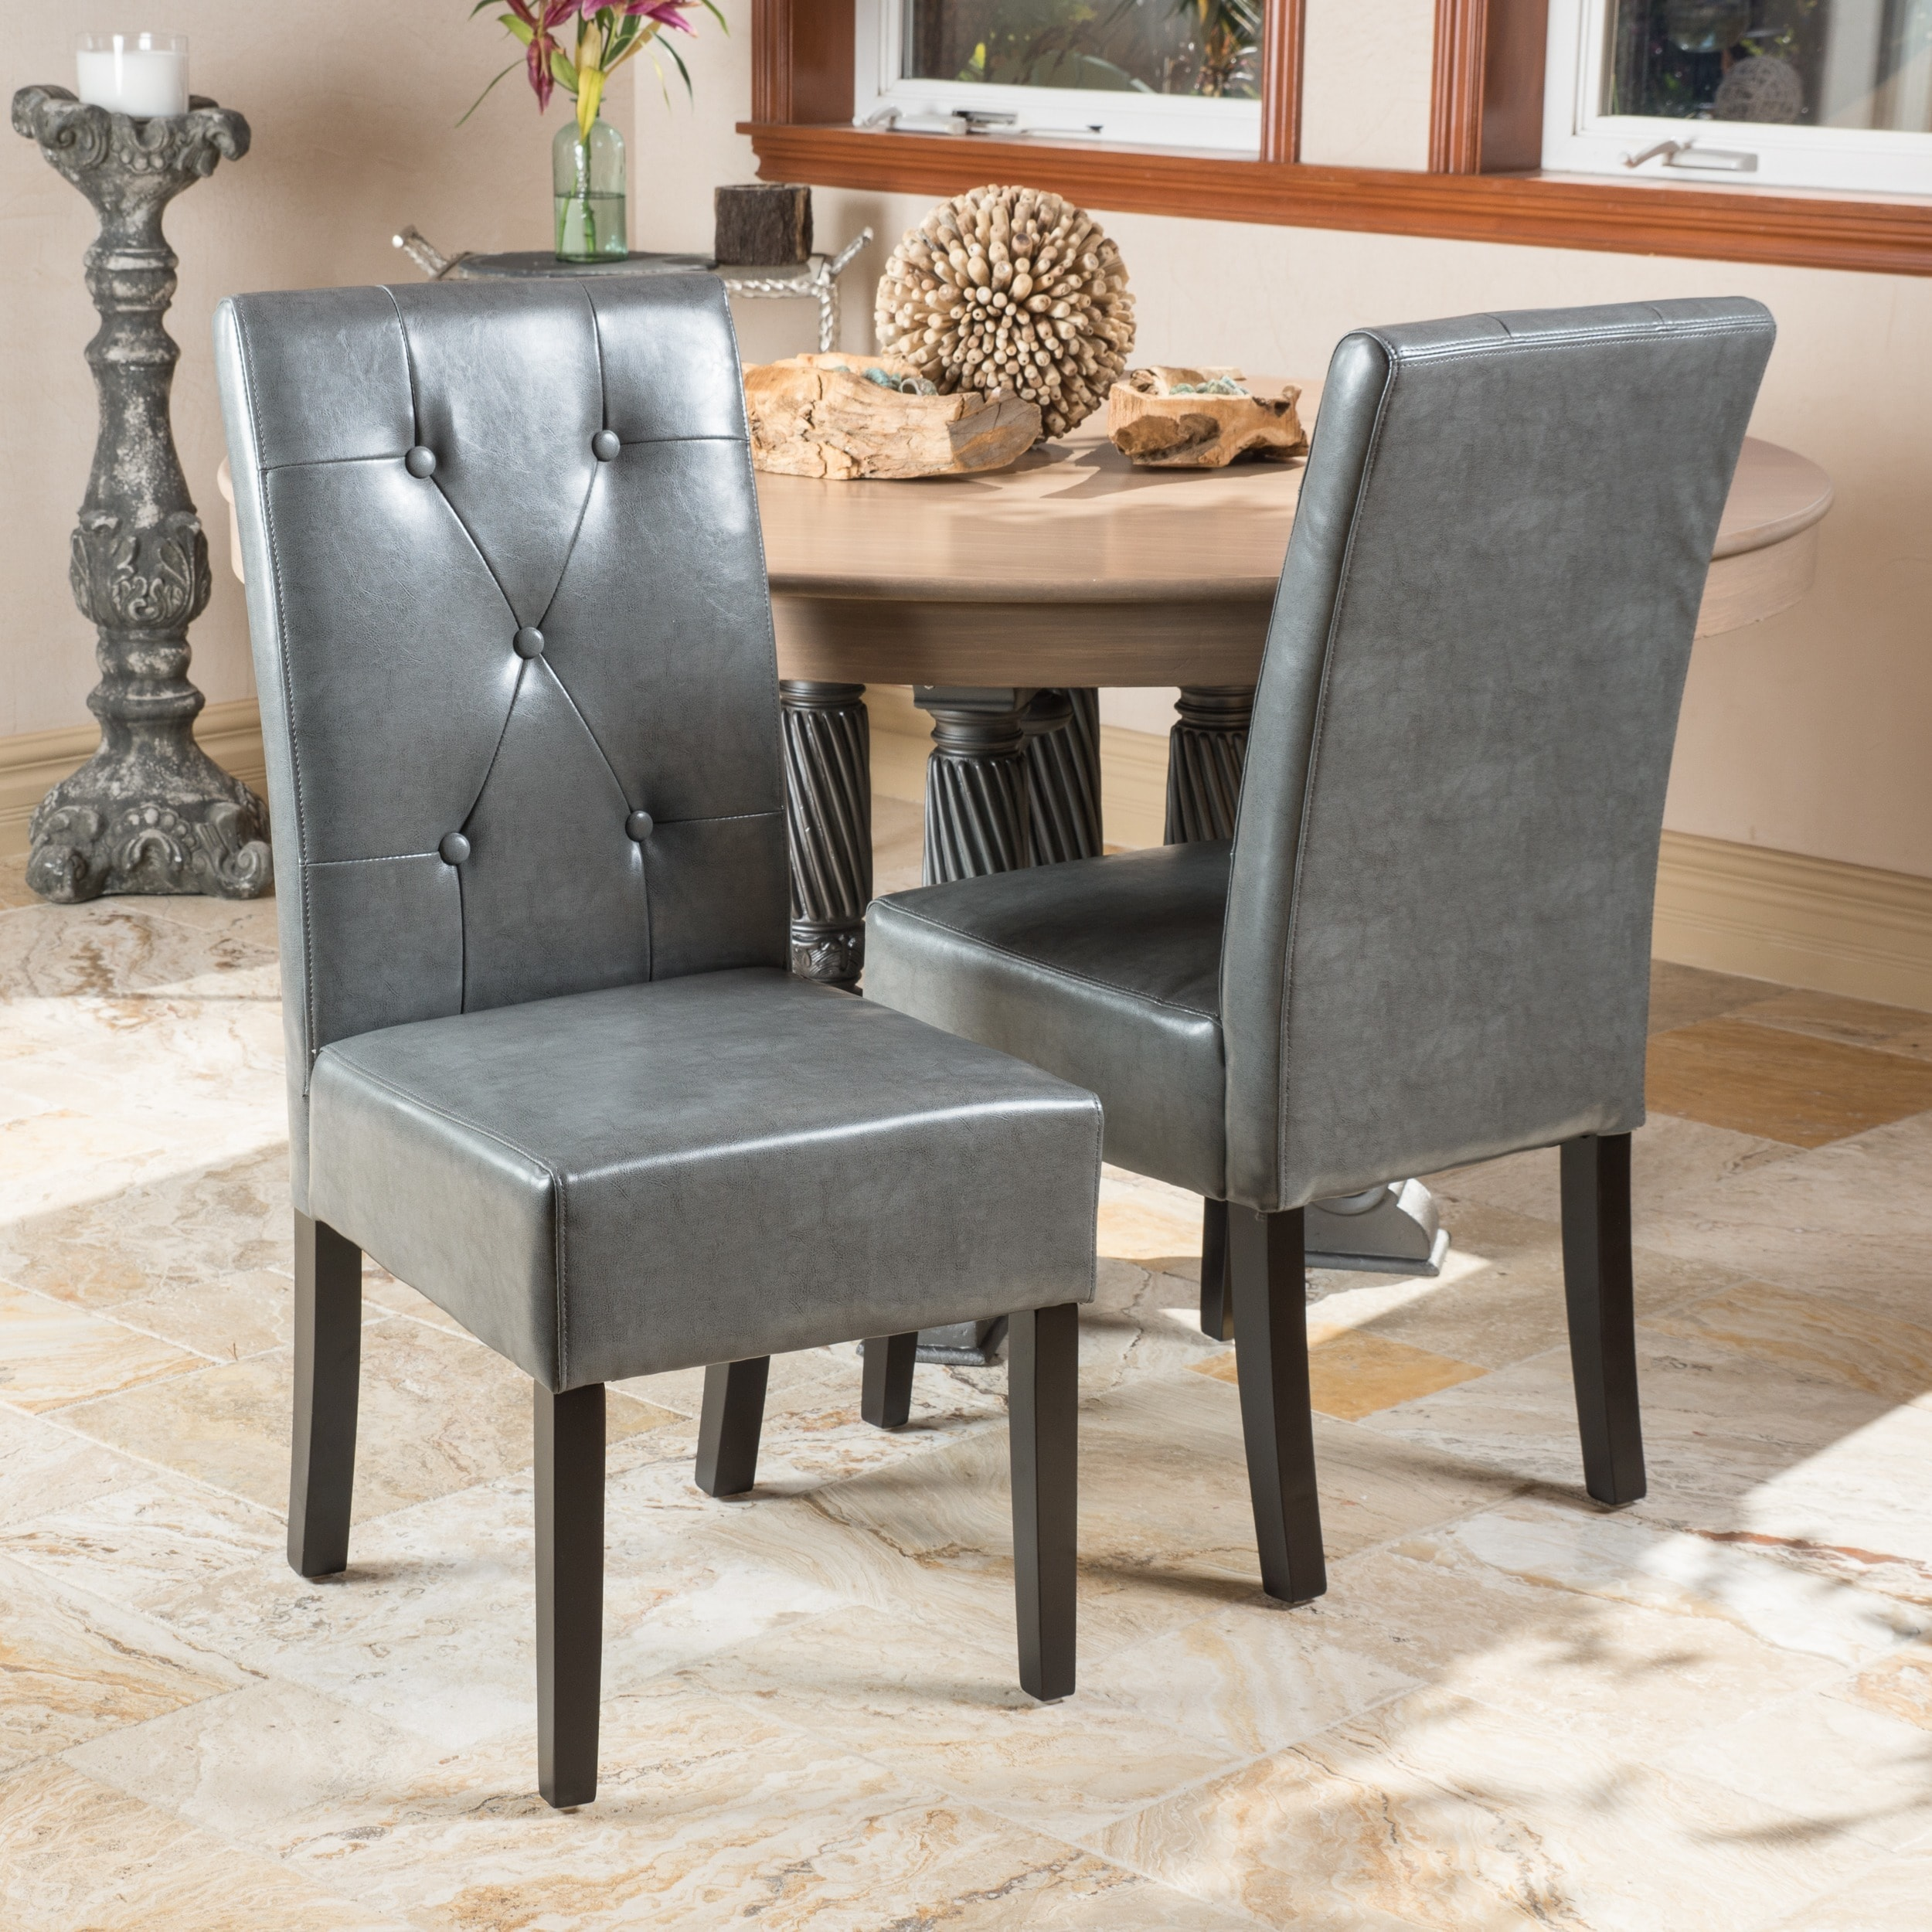 christopher knight home taylor grey bonded leather dining chair set of 2 overstock shopping. Black Bedroom Furniture Sets. Home Design Ideas